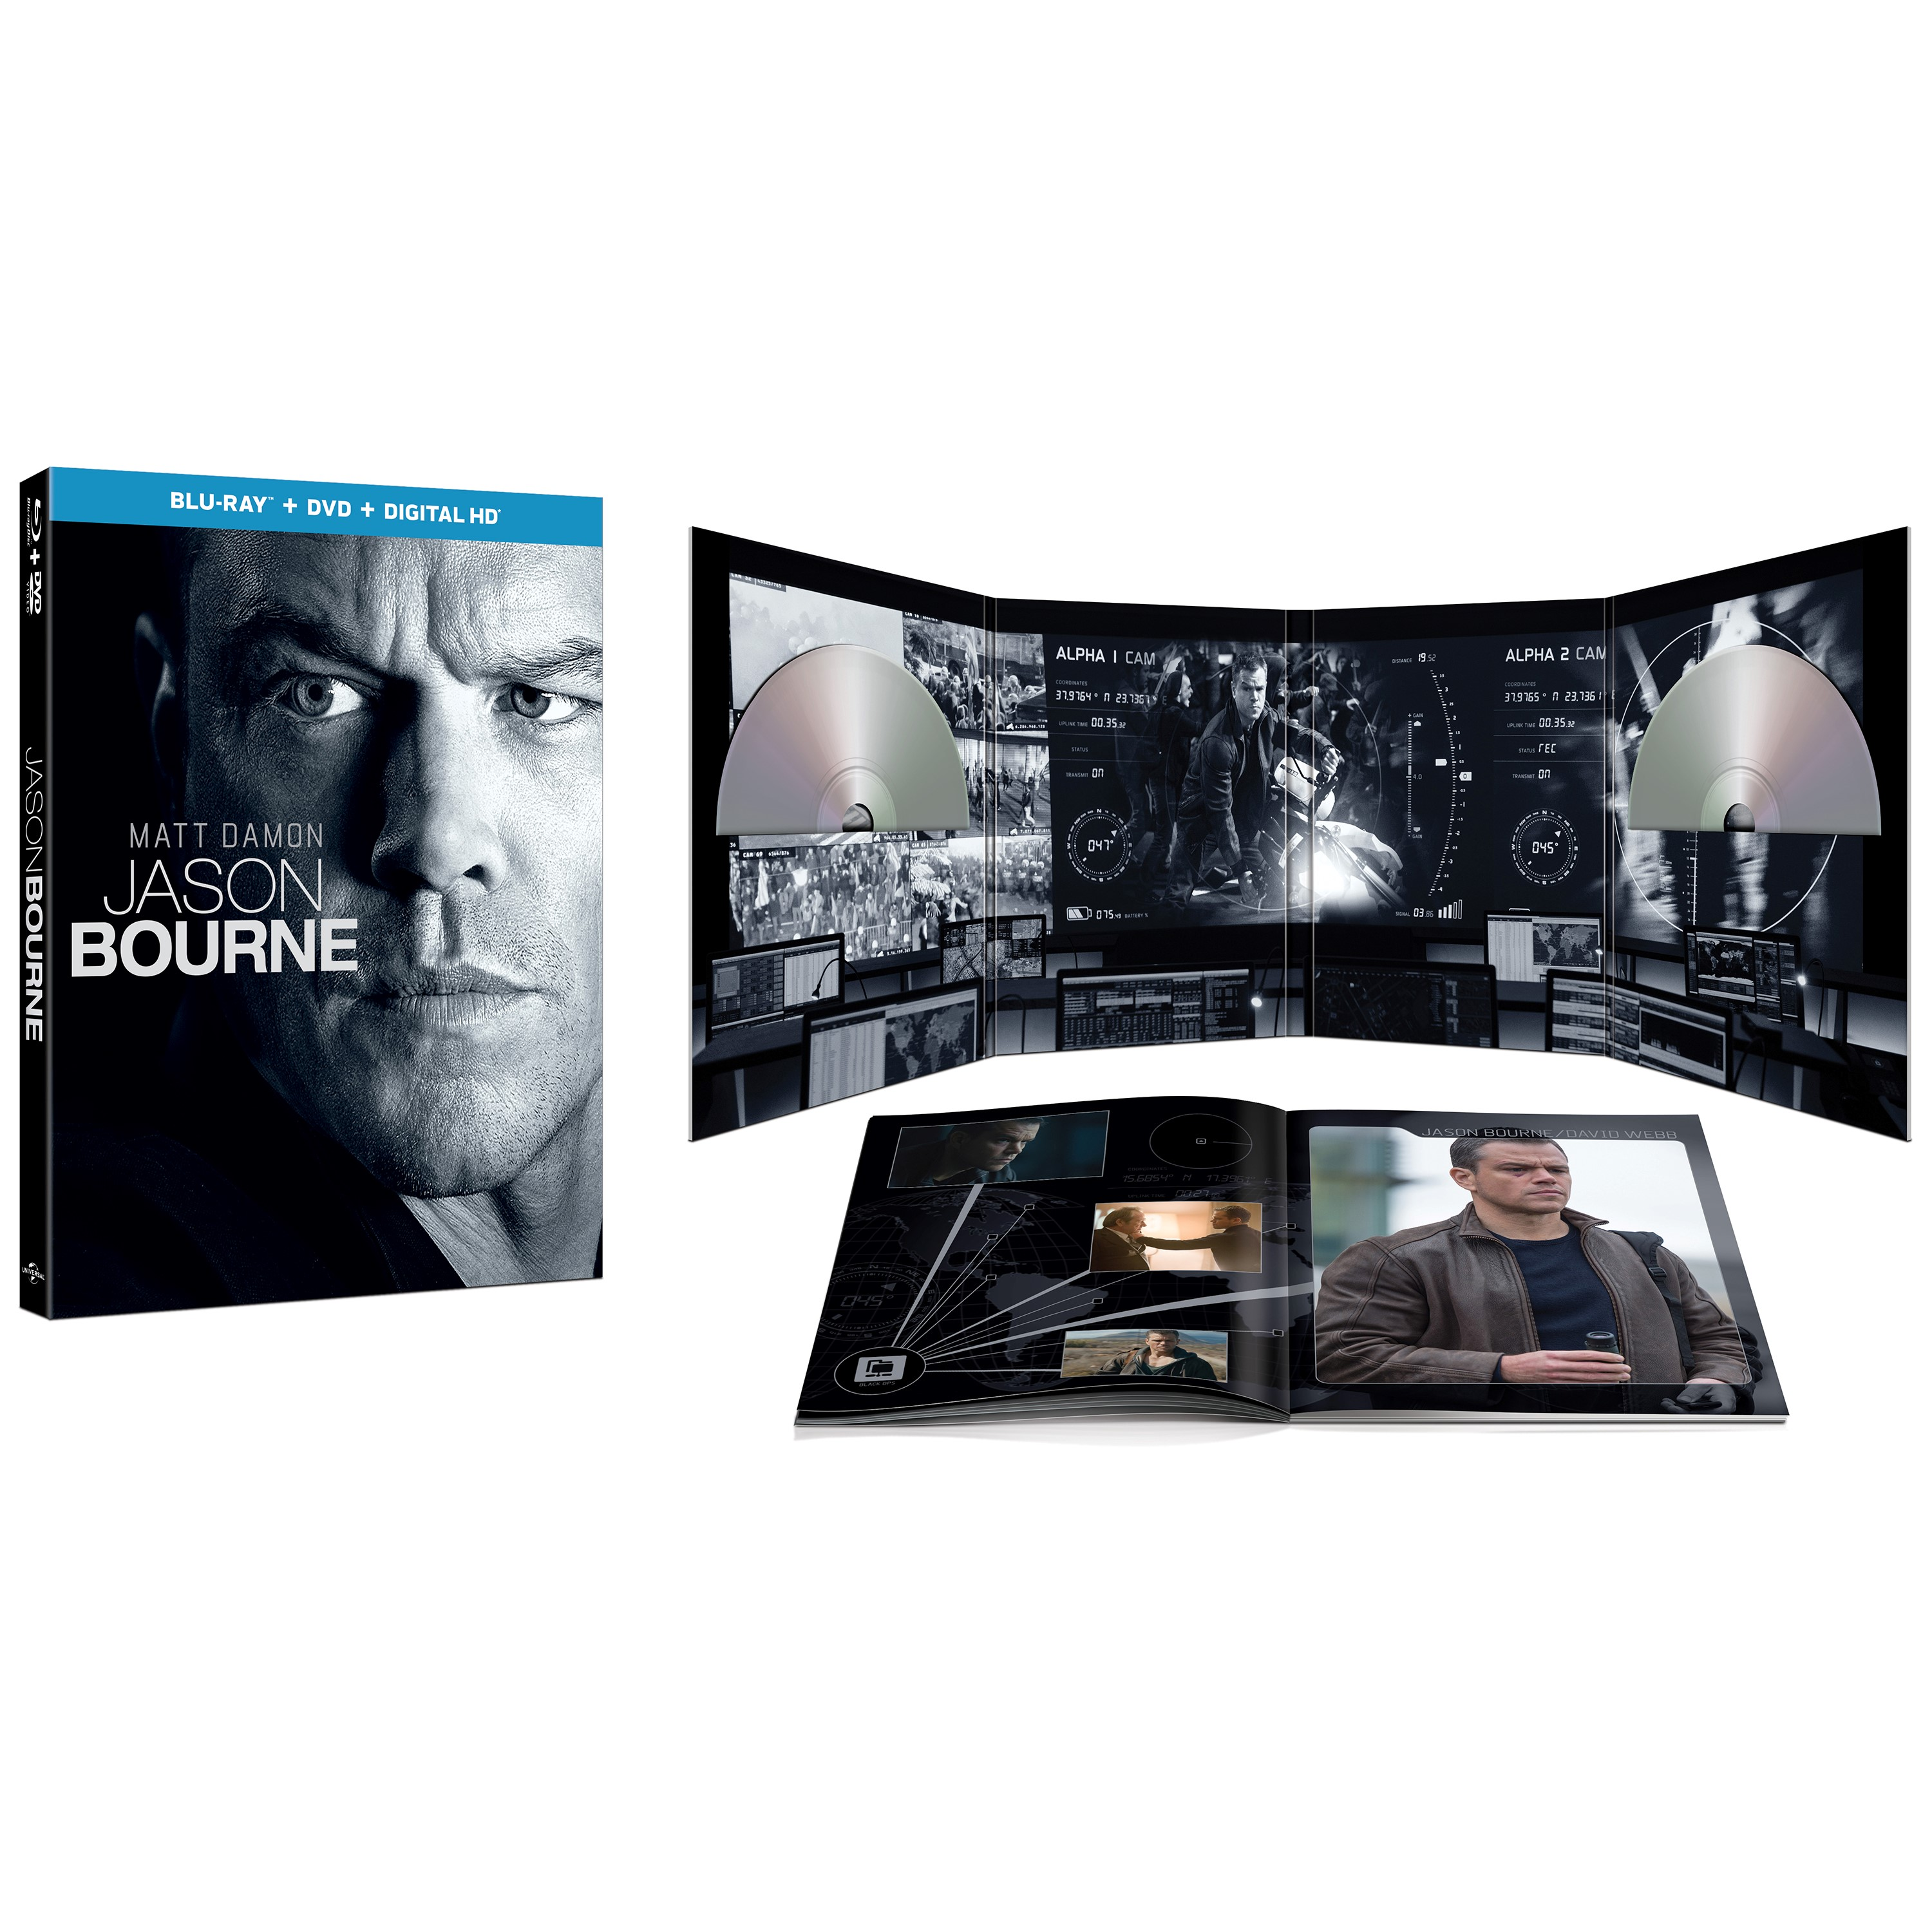 Jason Bourne (Blu-ray   DVD   Digital HD) (With INSTAWATCH) (Walmart Exclusive) (Widescreen)